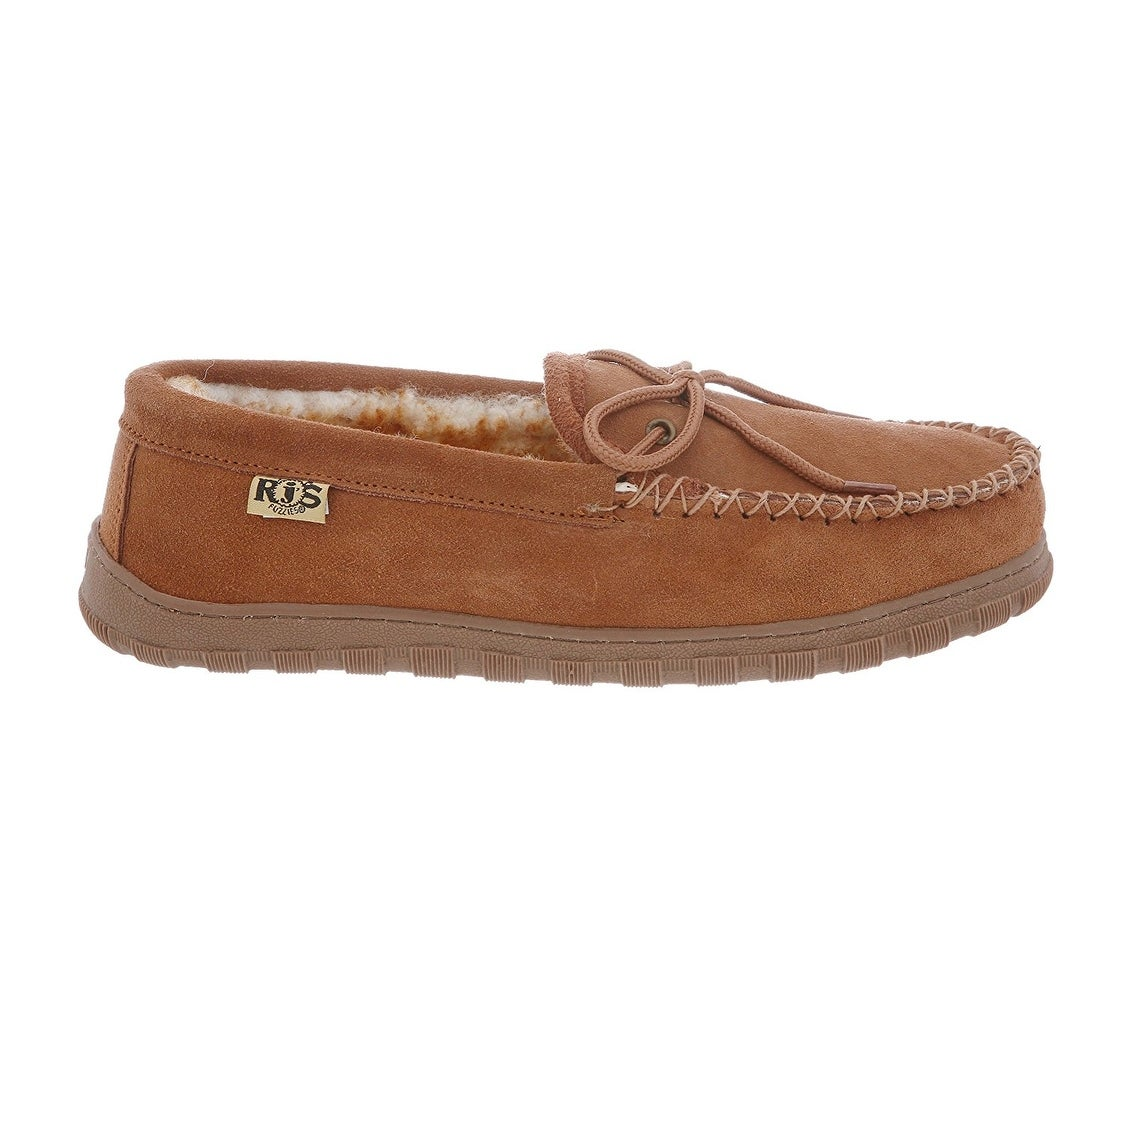 ad13382bdea Shop RJ s Fuzzies Mens Sheepskin Leather Lined Moccasins - Free Shipping  Today - Overstock - 14111058